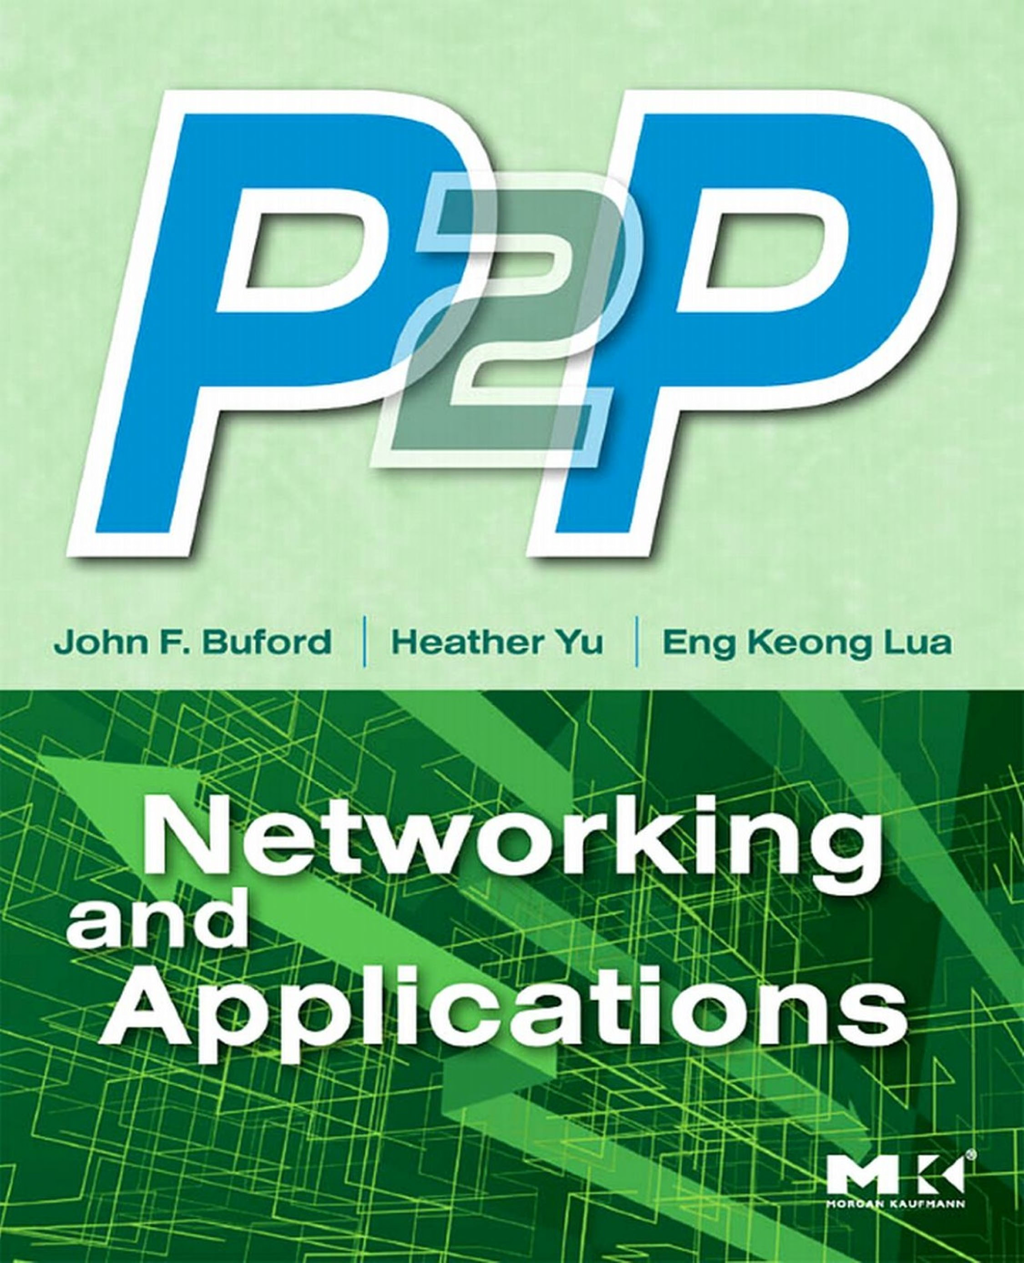 P2P Networking and Applications